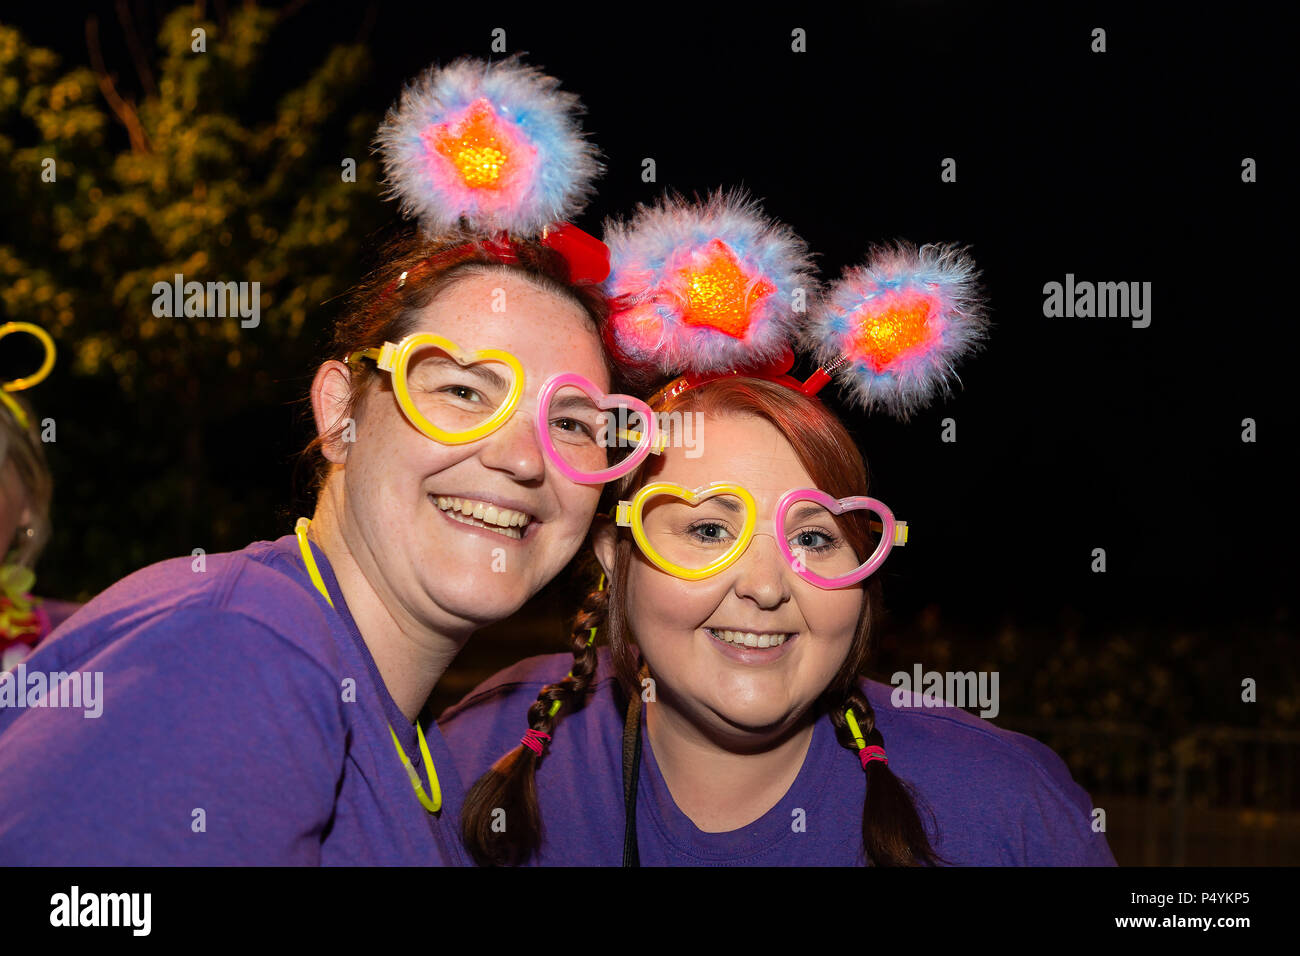 Warrington, UK. 23rd June, 2018. 23 June 2018 - Starlight Ladies Walk, a sponsored ladies-only walk which begins at midnight at the Orford Jubilee Neighbourhood Hub. The aim is to raise as much money as possible for St. Rocco's Hospice a Registered Charity that provides specialist care and support across Warrington, helping those who are coping with a life-limiting illness. Credit: John Hopkins/Alamy Live News - Stock Image